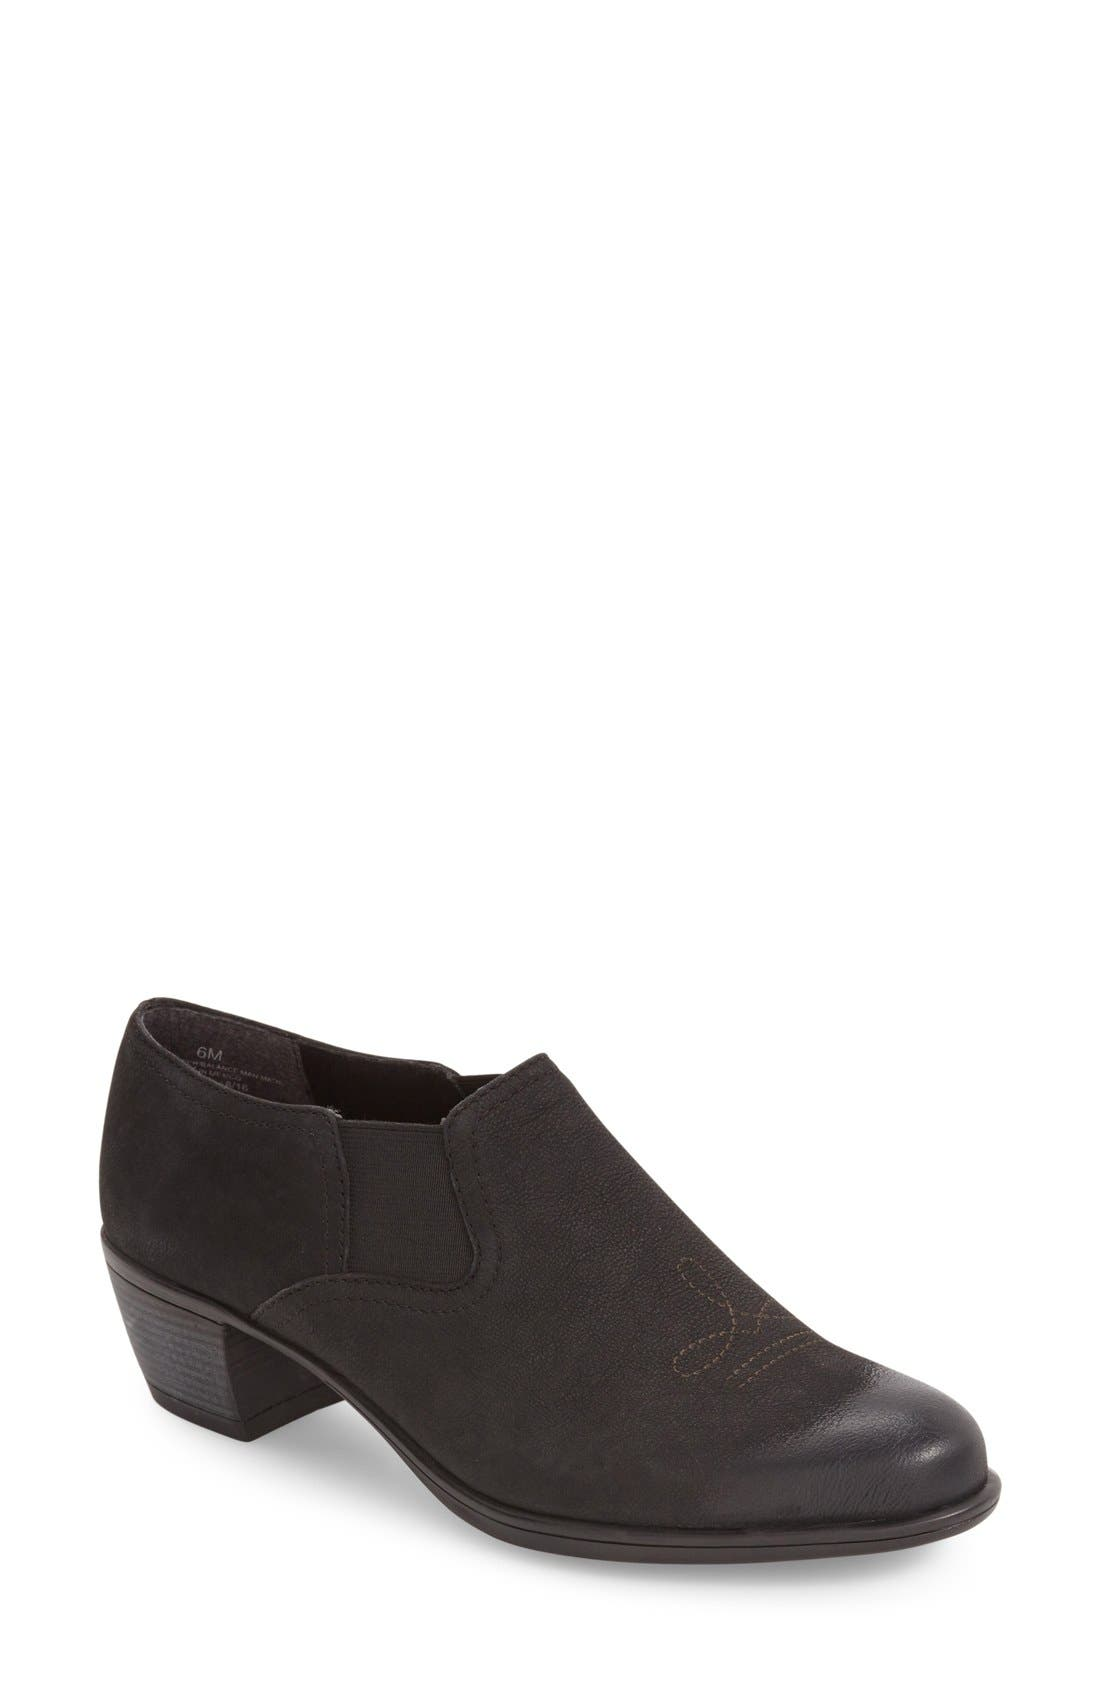 Silverton Water Resistant Ankle Bootie,                         Main,                         color, BLACK SUEDE